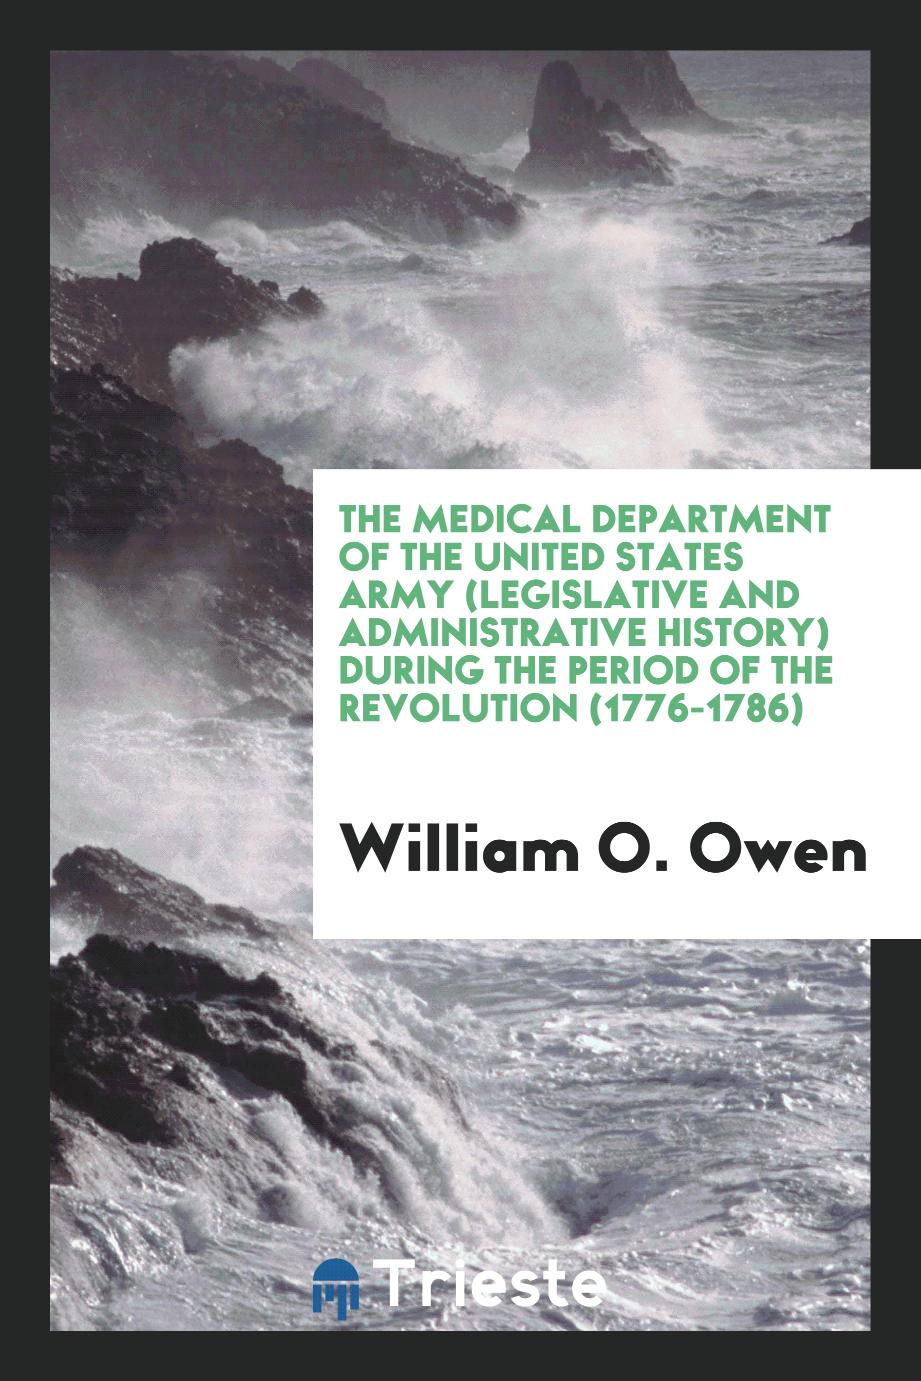 The Medical Department of the United States Army (Legislative and Administrative History) during the period of the Revolution (1776-1786)